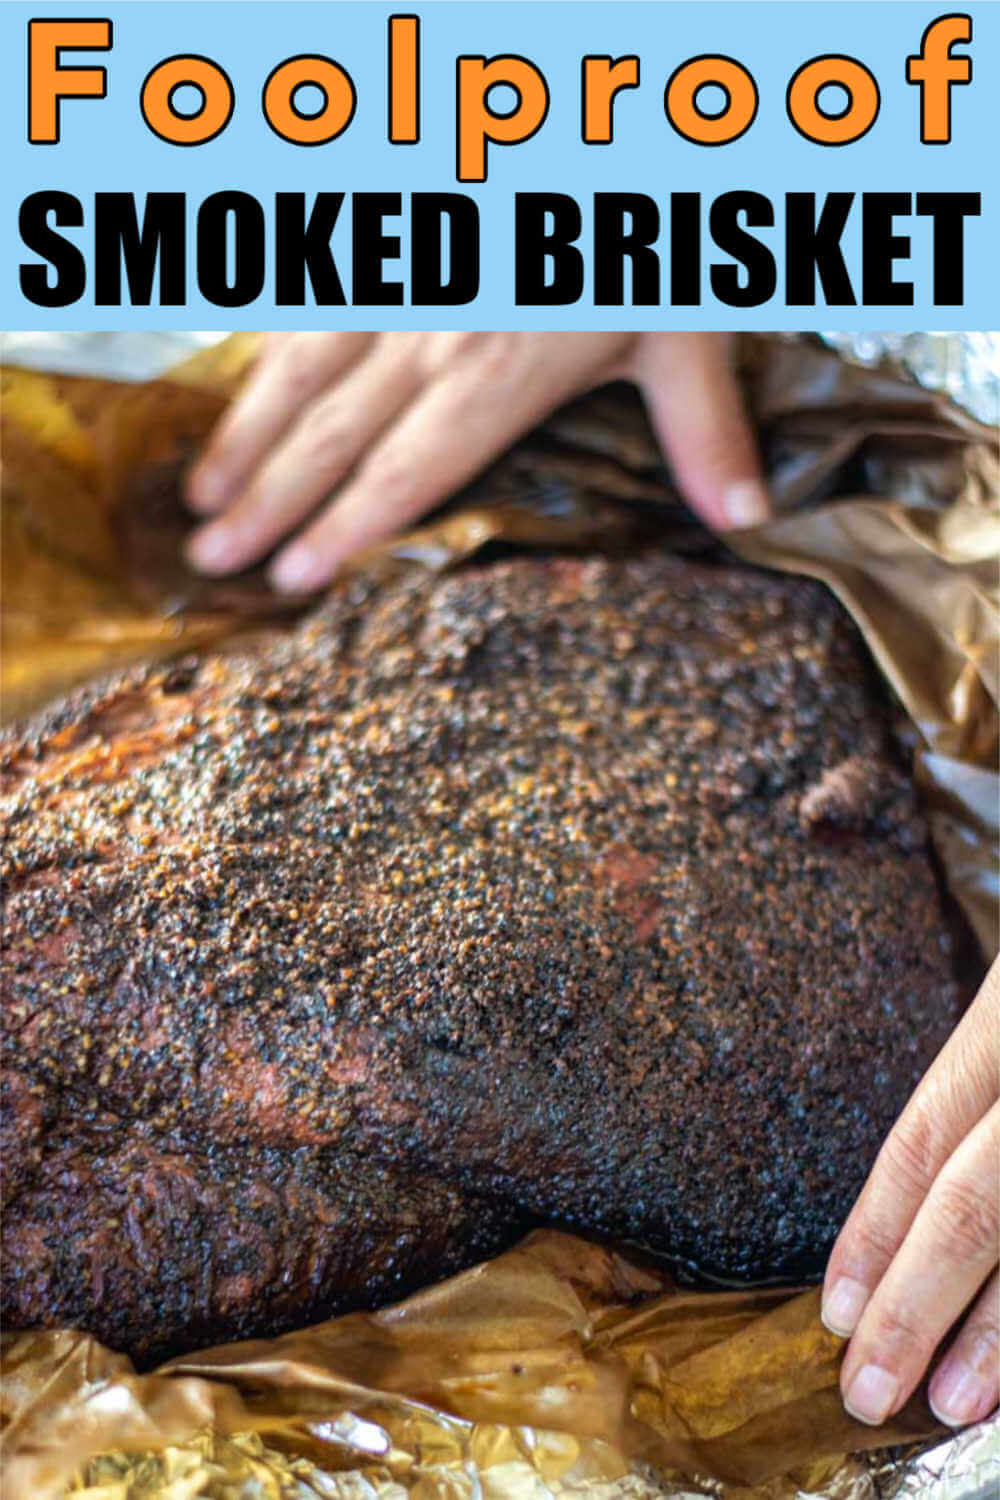 Super Easy Smoked Brisket Recipe Using the Wrapped Method